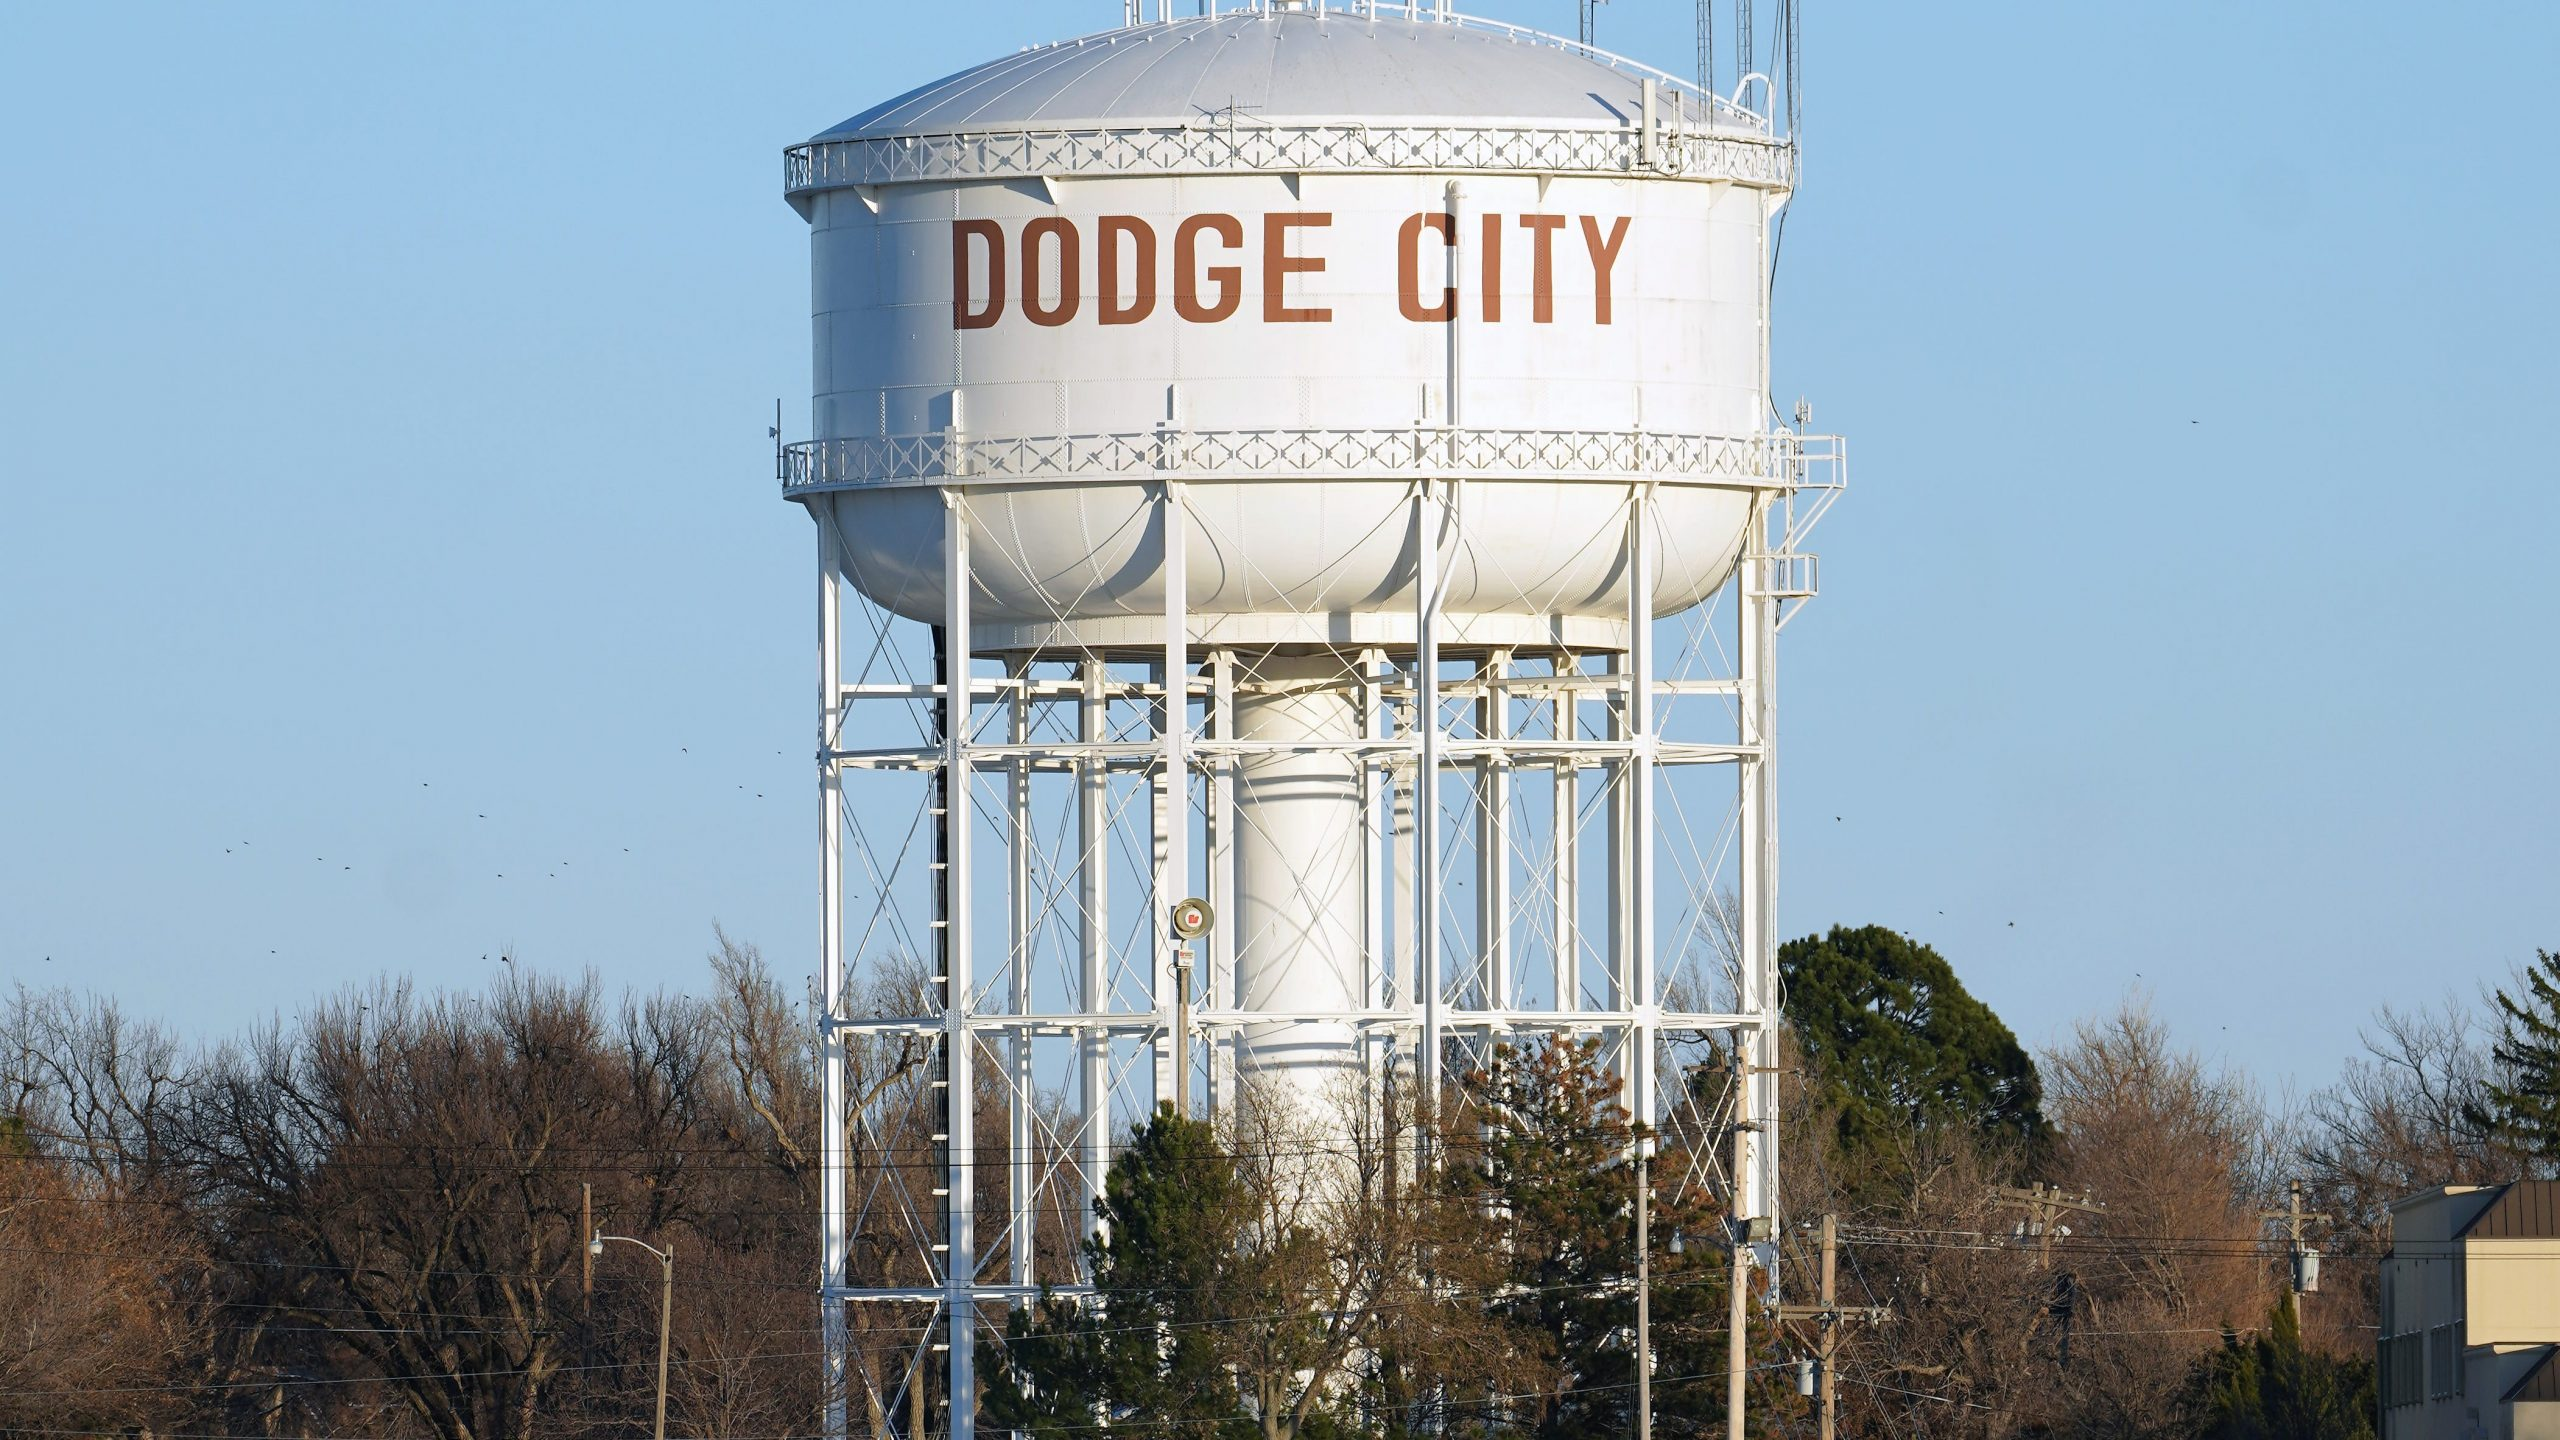 dodge city water department A small town dragged its feet on mask mandates, and thousands got sick - dodge city water department